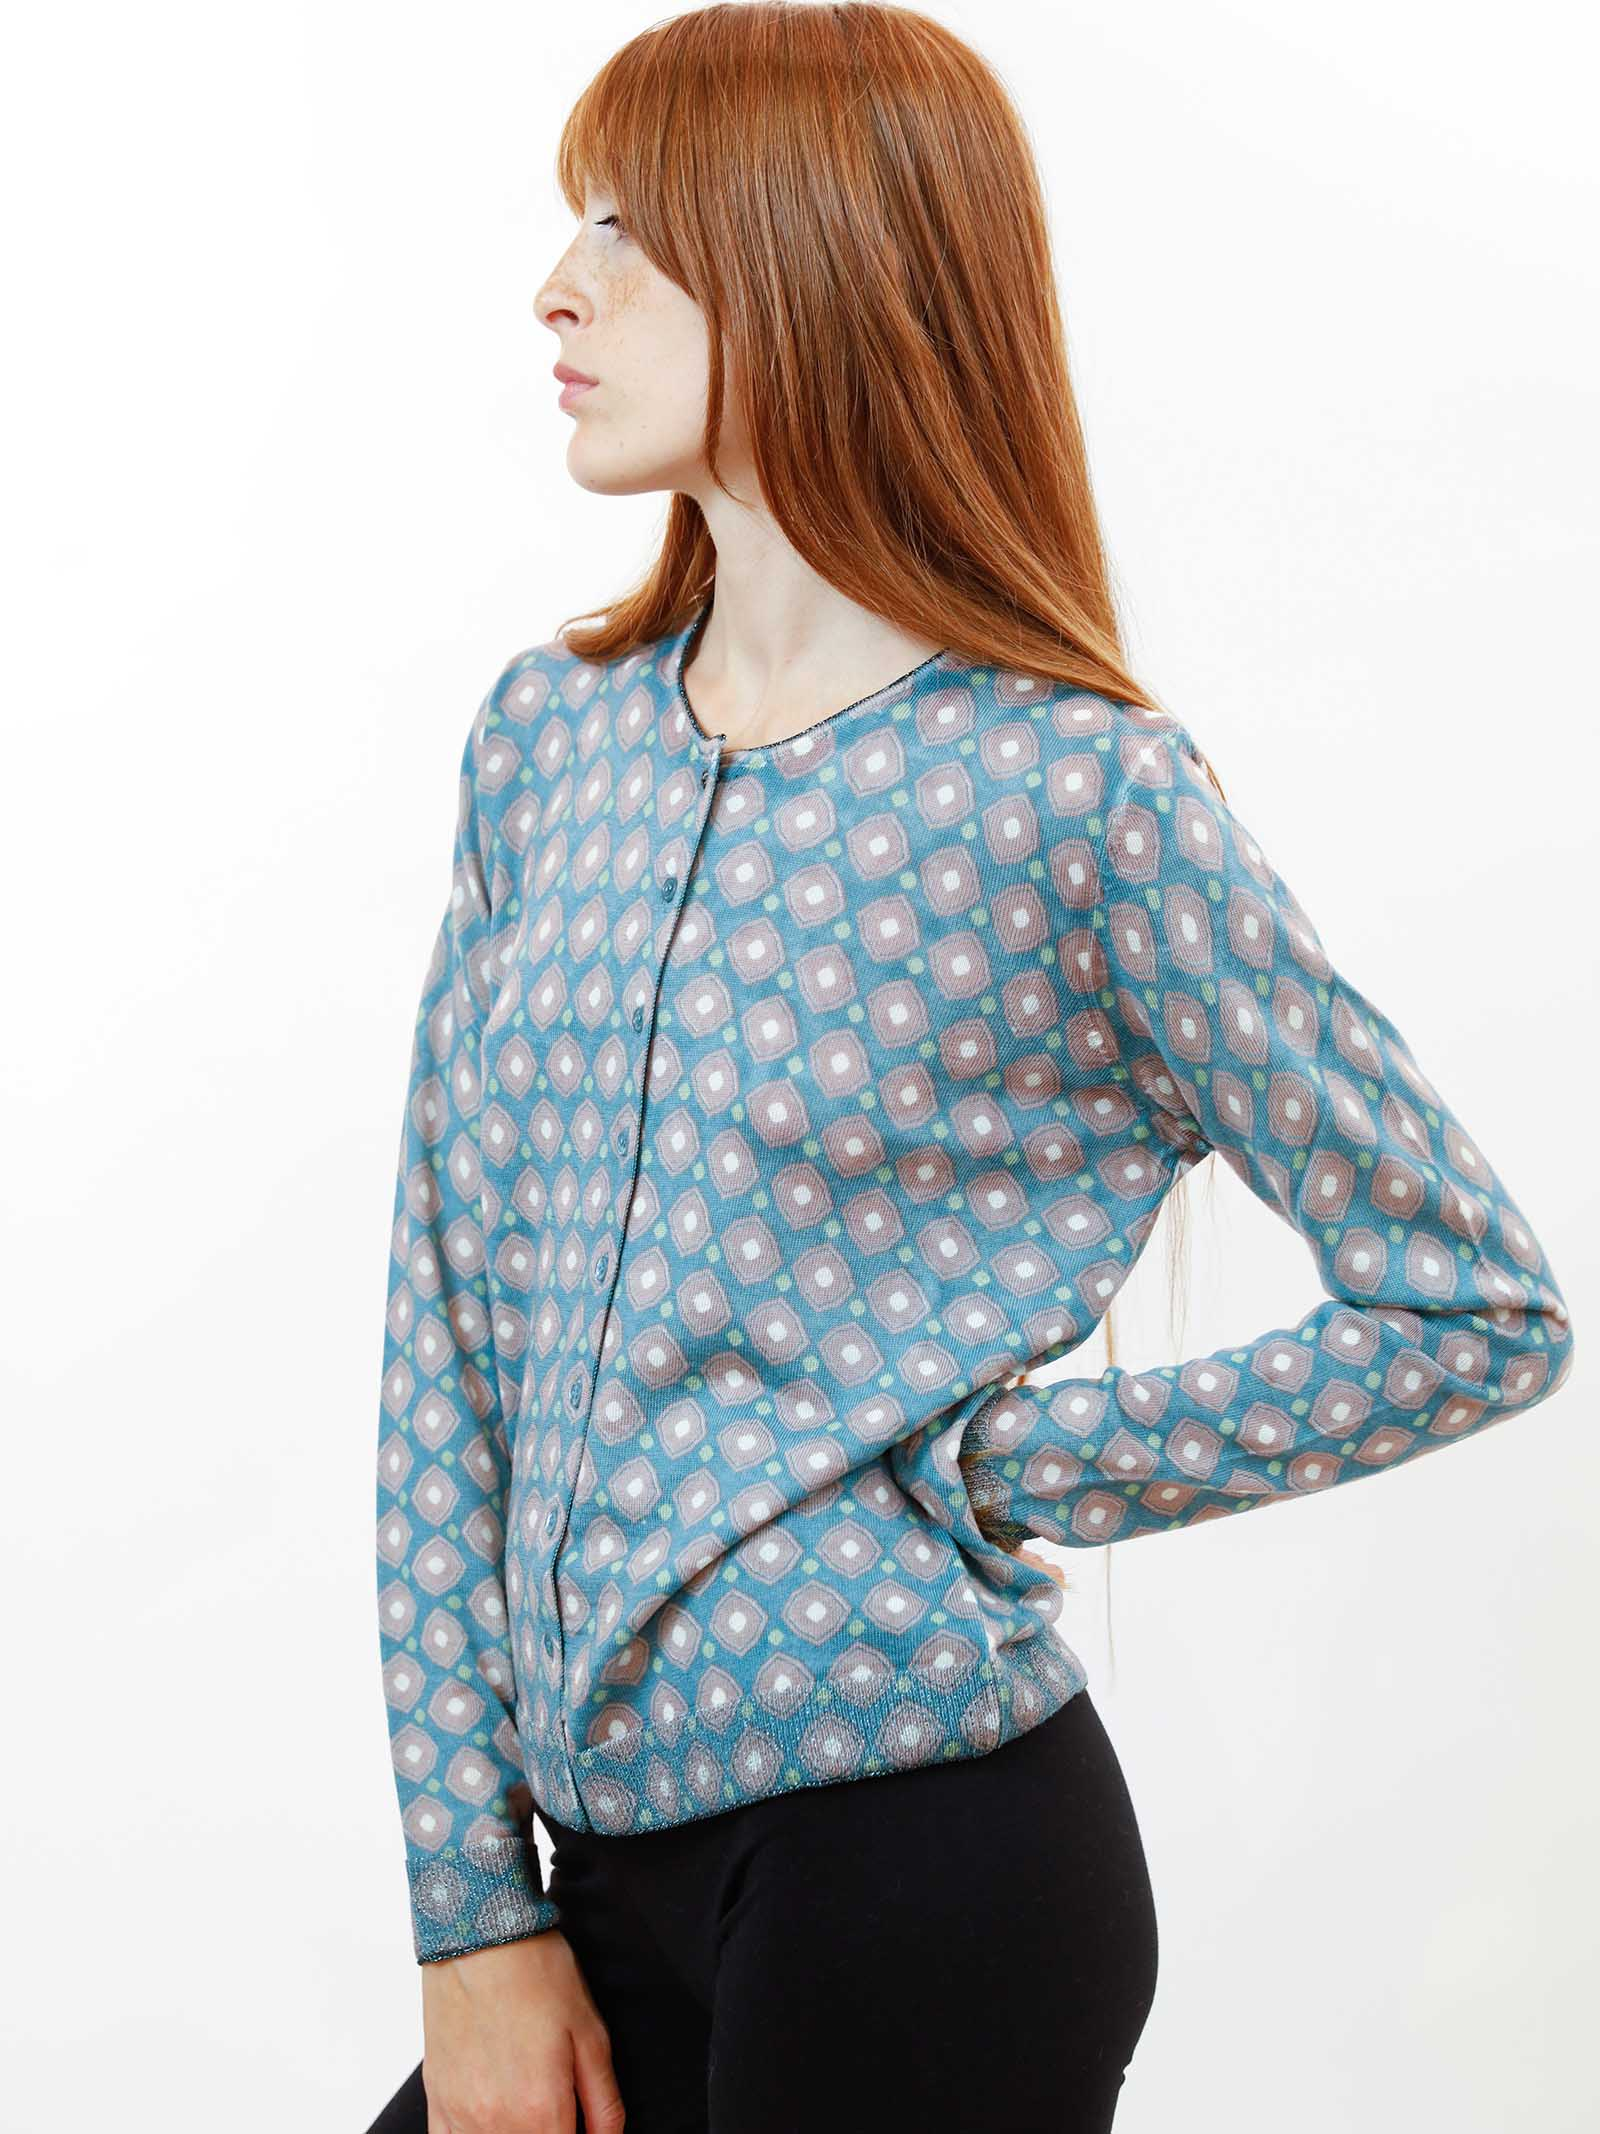 Women's Clothing Archizoom Merino Cardigan in Pure Wool Sage and Ivory with Long Sleeves and Mixed Buttons Maliparmi | Knitwear | JN355170511C6037